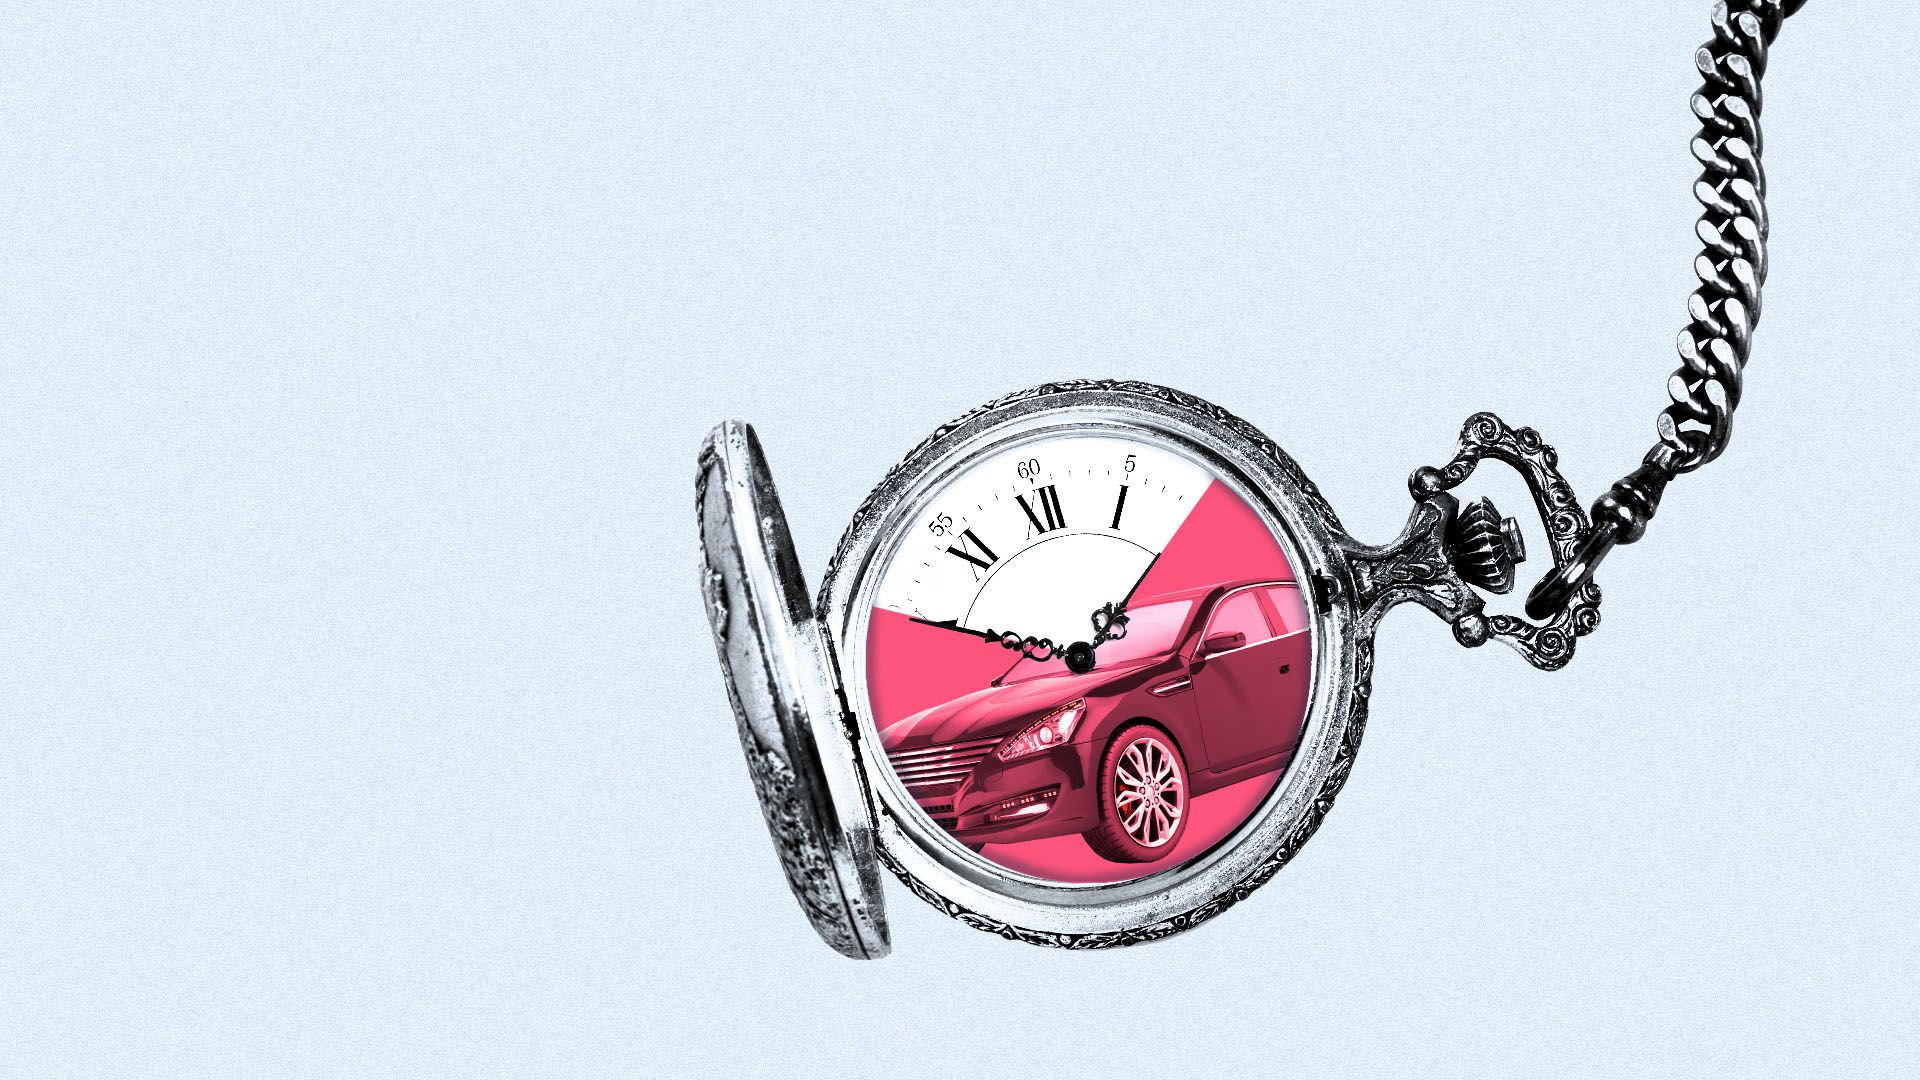 Illustration of a pocket watch with a car reflected in its face